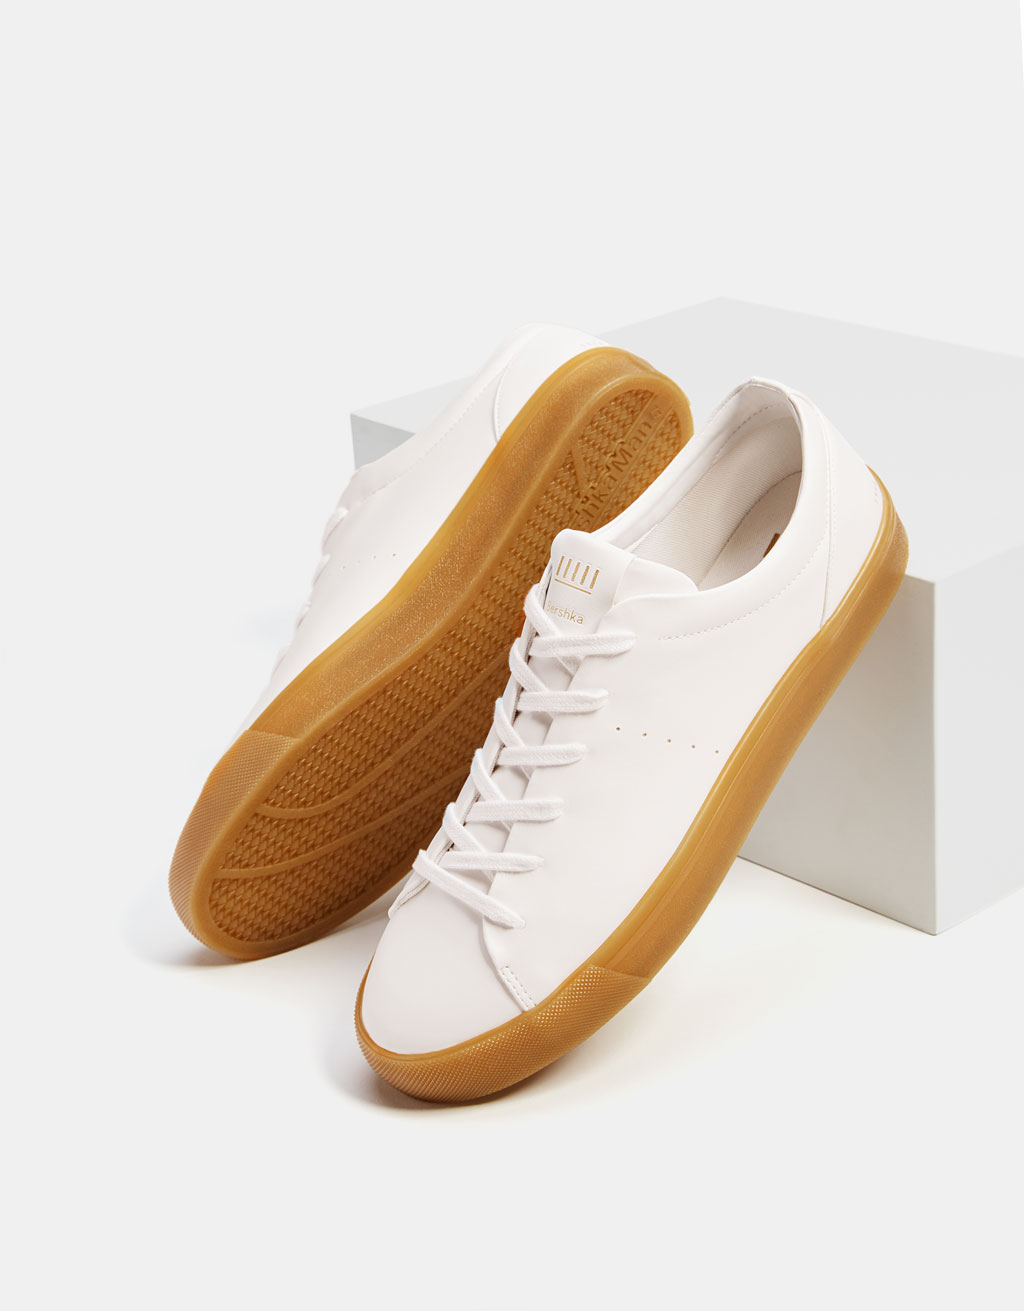 Men's sneakers with caramel coloured soles